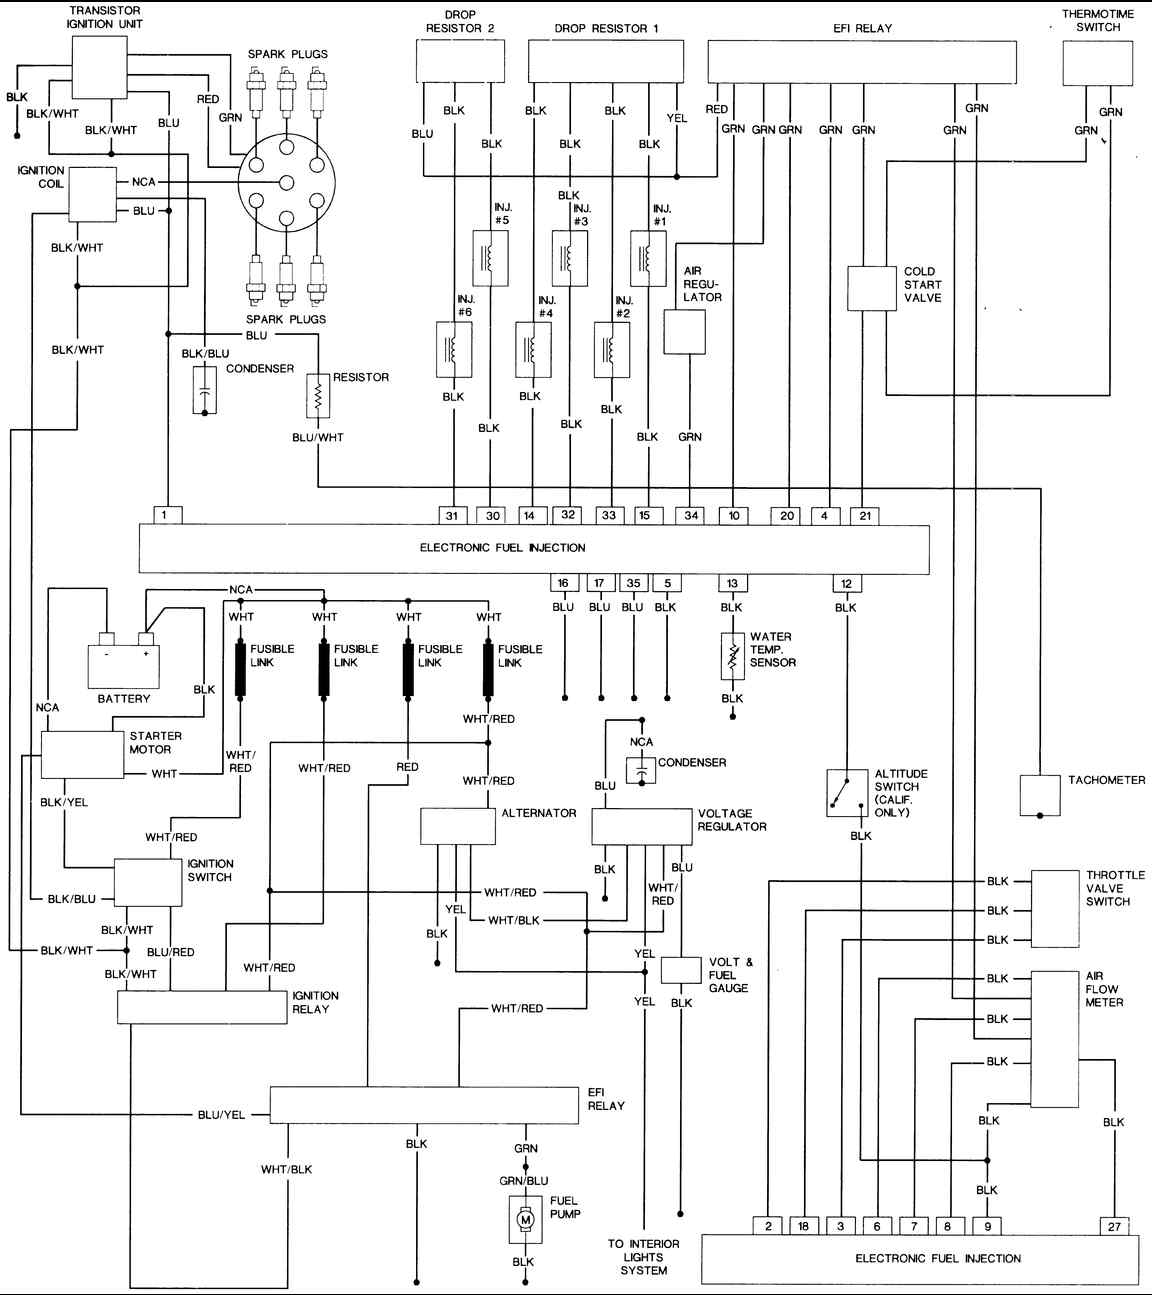 nissan 280zx heater wiring diagram datsun 280zx engine diagram e27 wiring diagram  datsun 280zx engine diagram e27